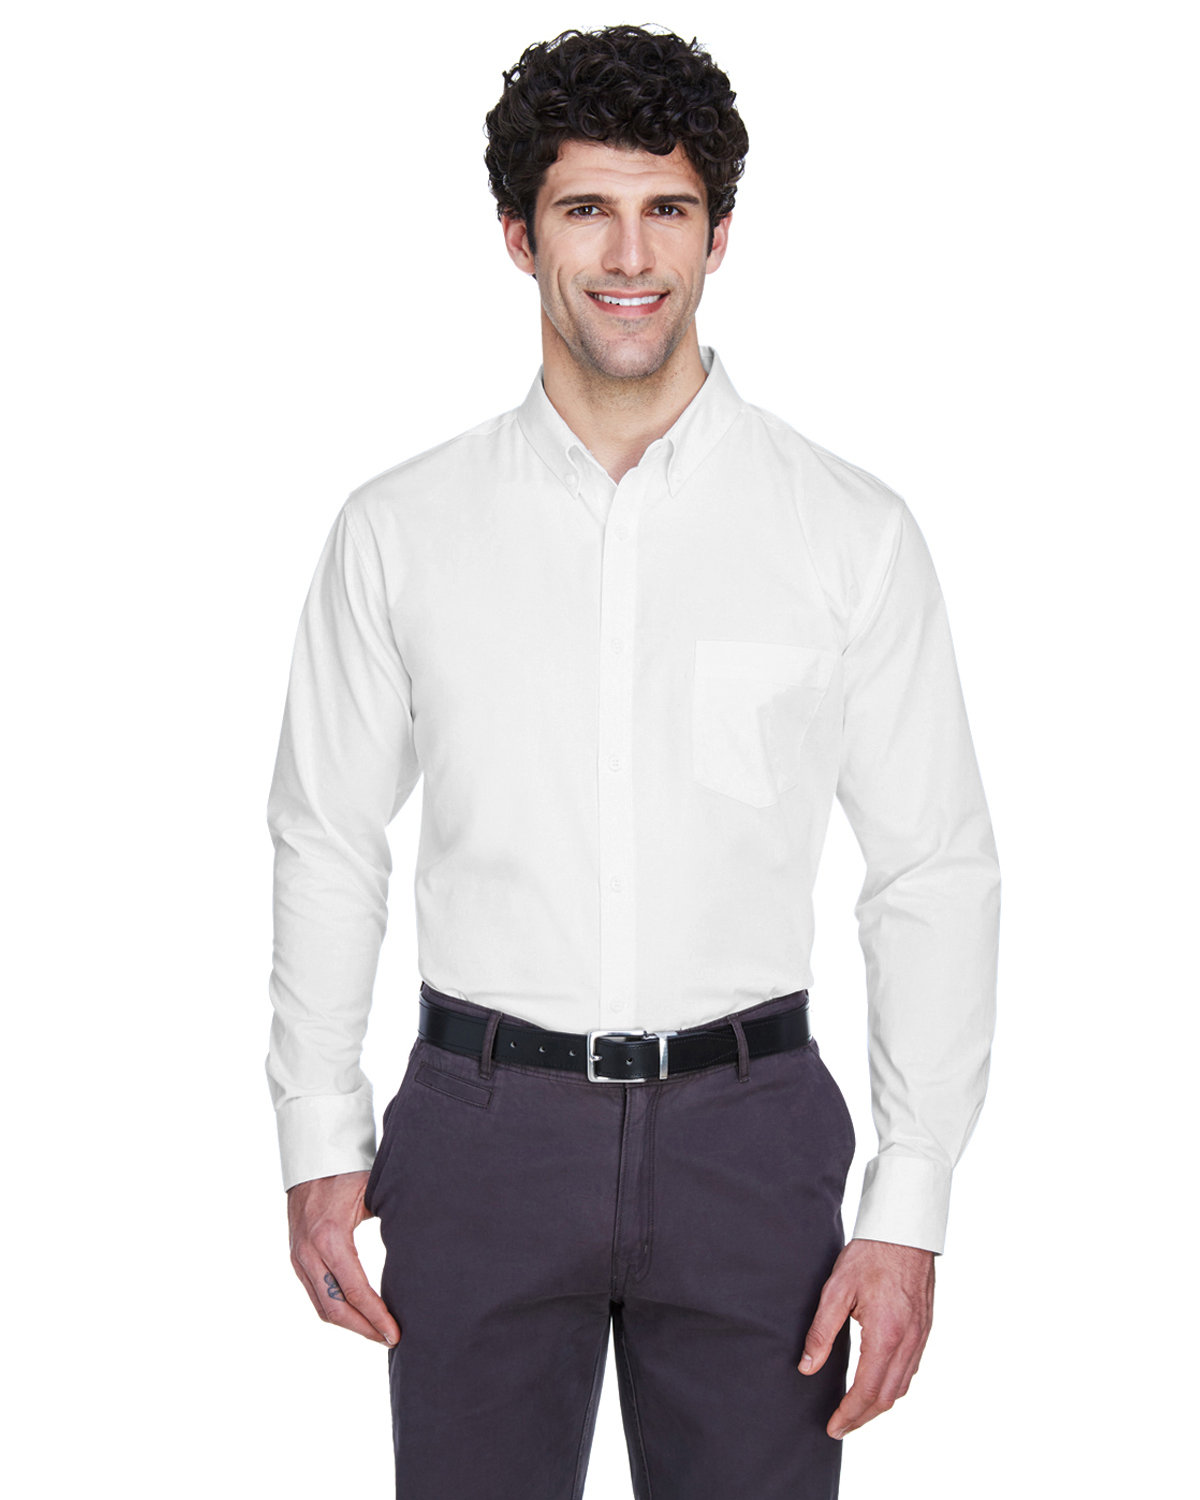 Core 365 Men's Tall Operate Long-Sleeve Twill Shirt WHITE